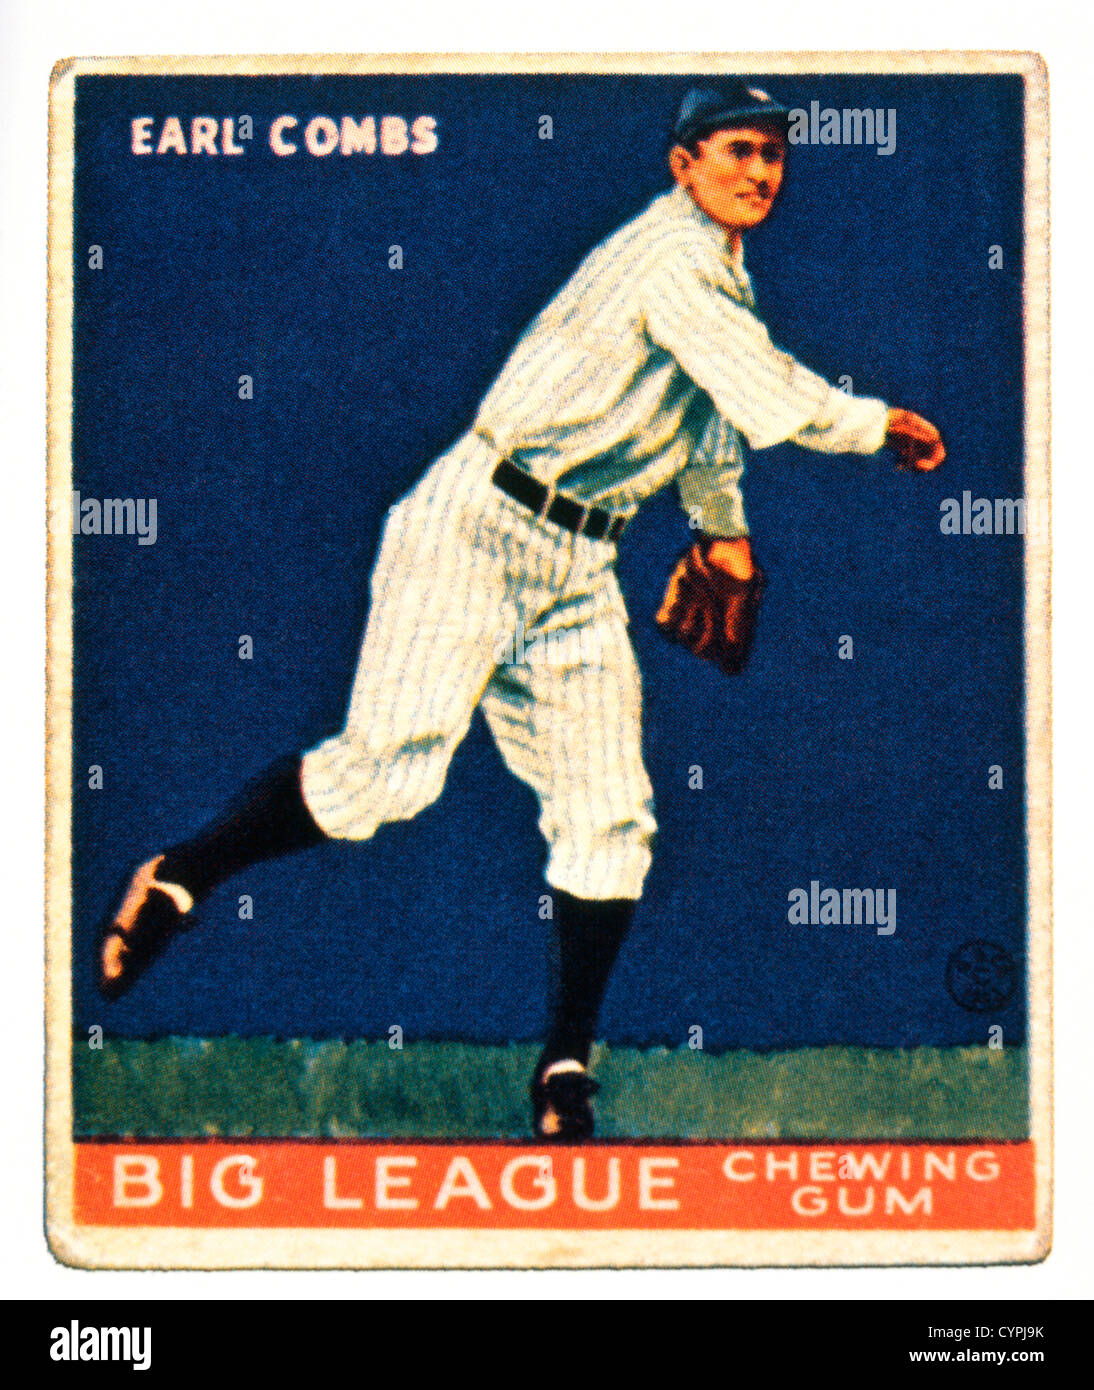 Earl Combs, New York Yankees, Trade Card - Stock Image